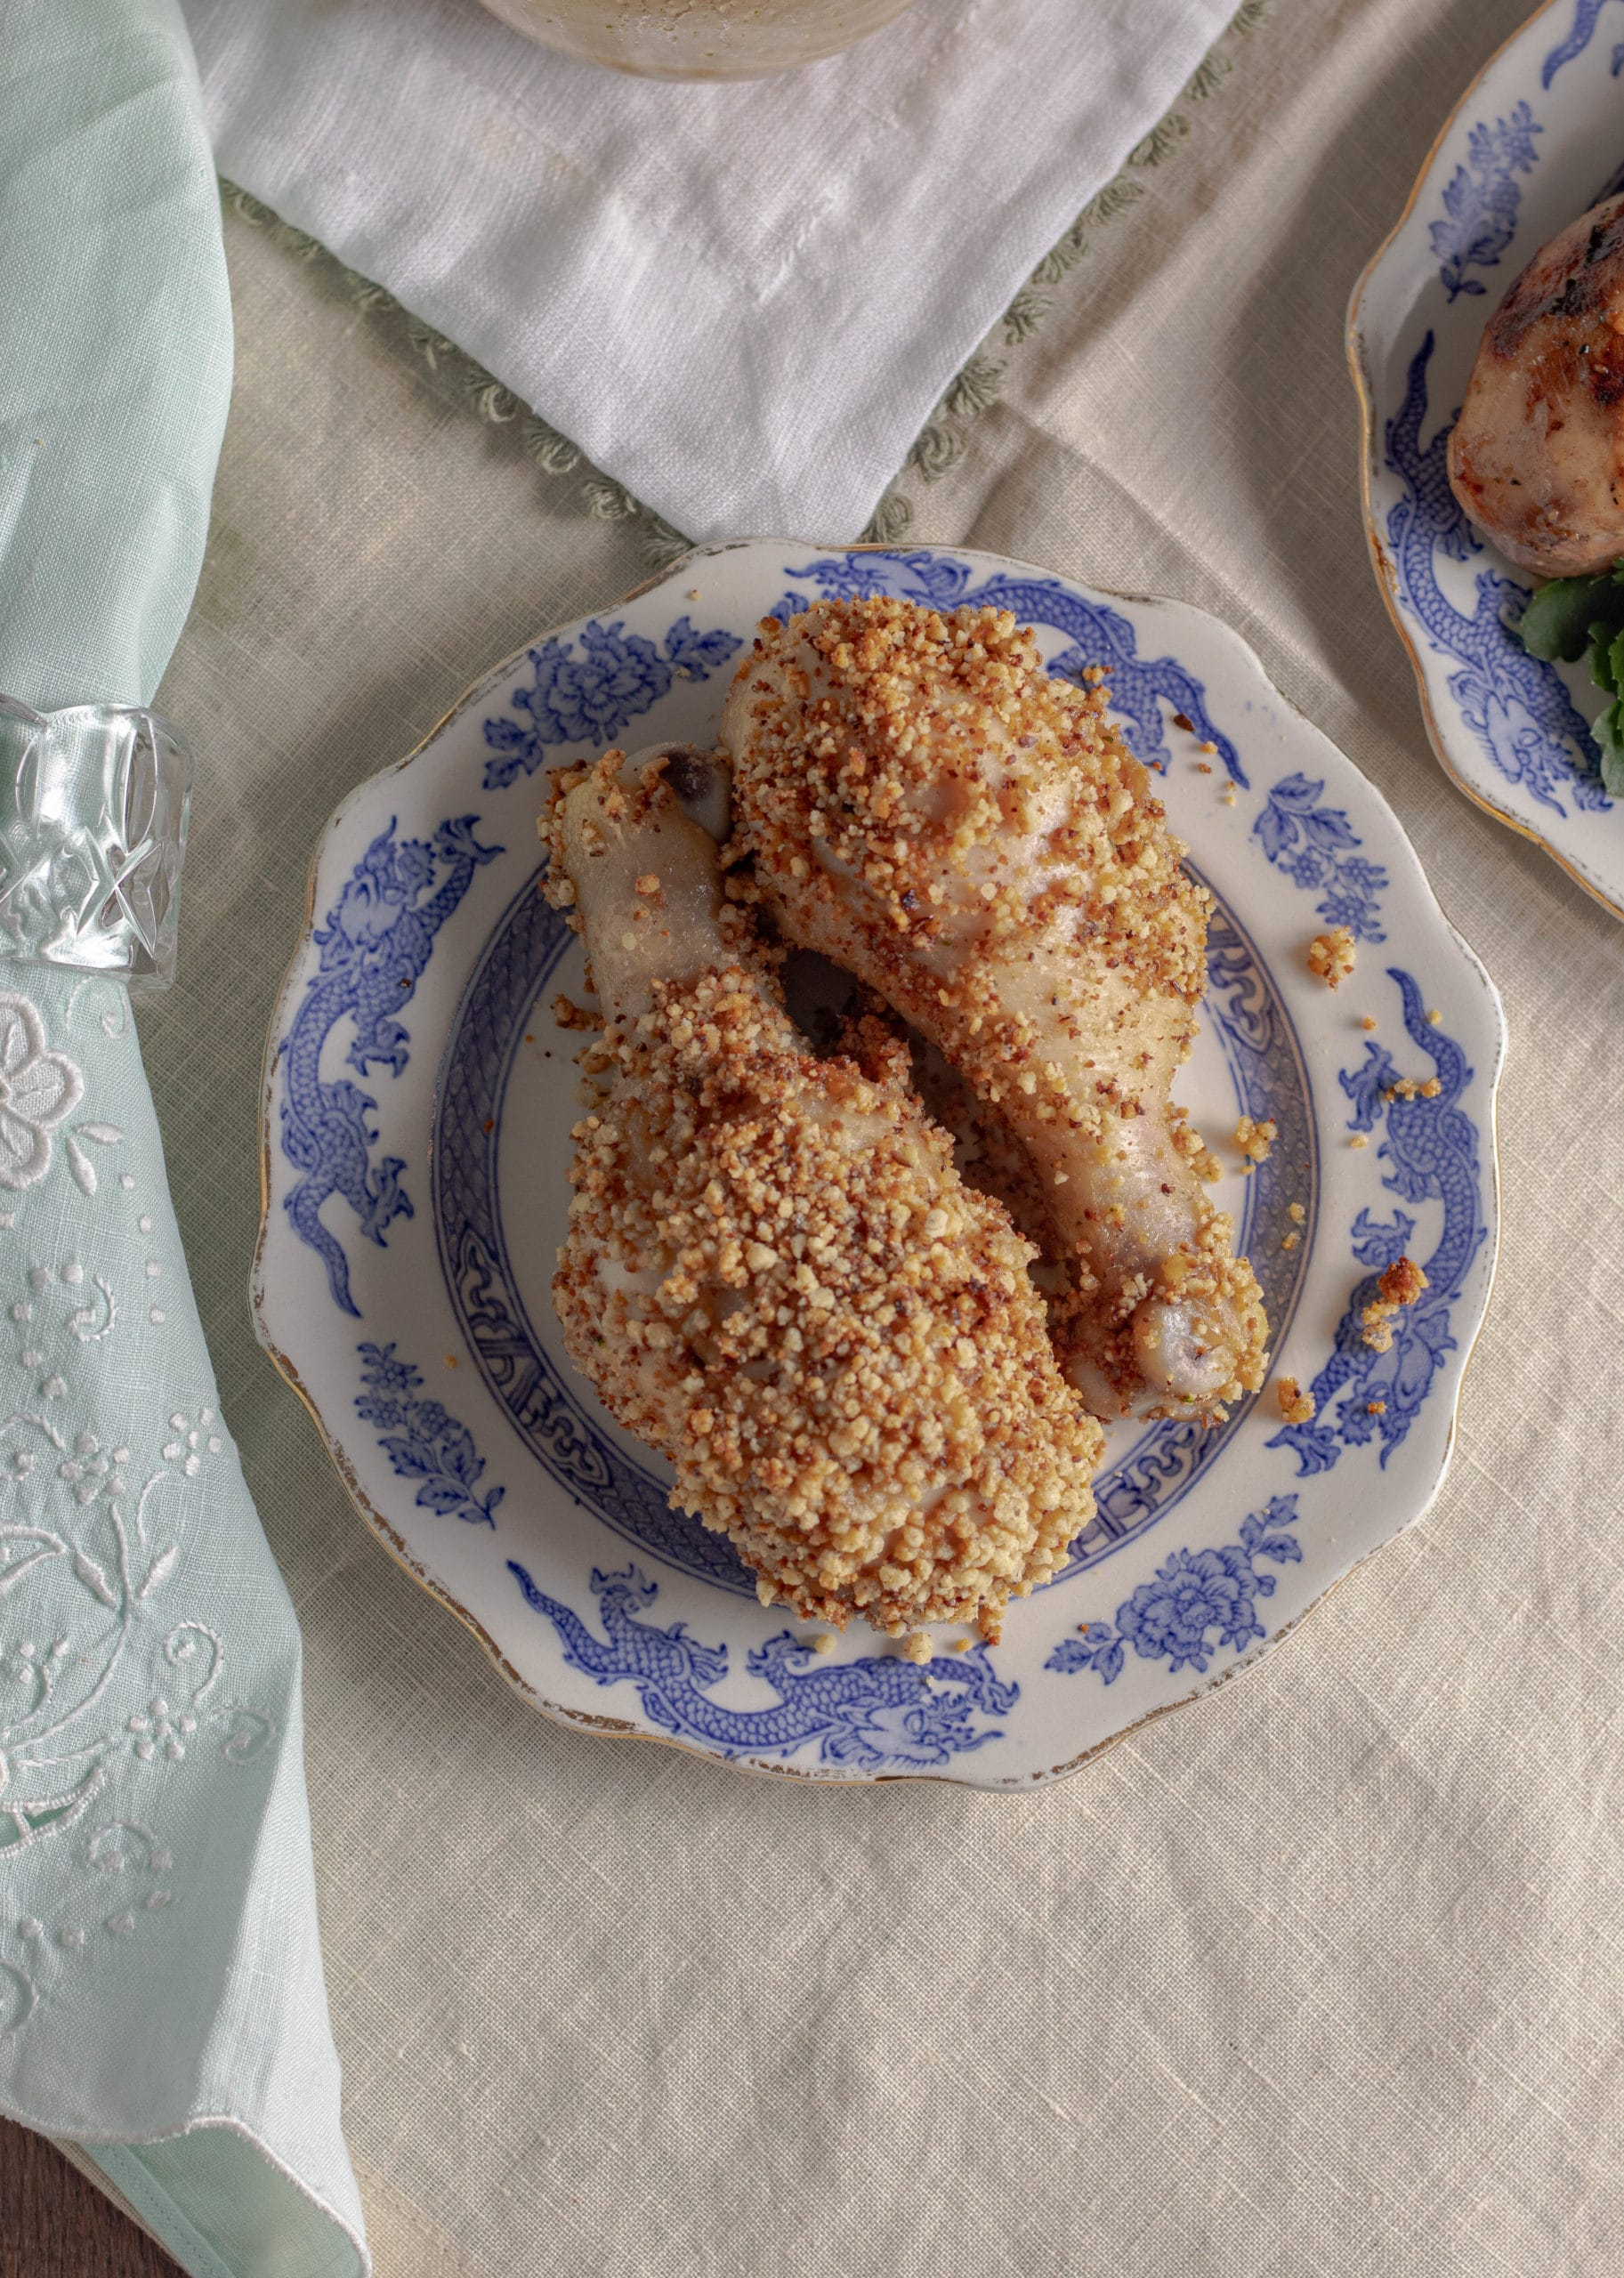 Crispy baked chicken drumsticks are marinated chicken legs are coated in a homemade gluten free breading. Keto shake and bake chicken copycat recipe.